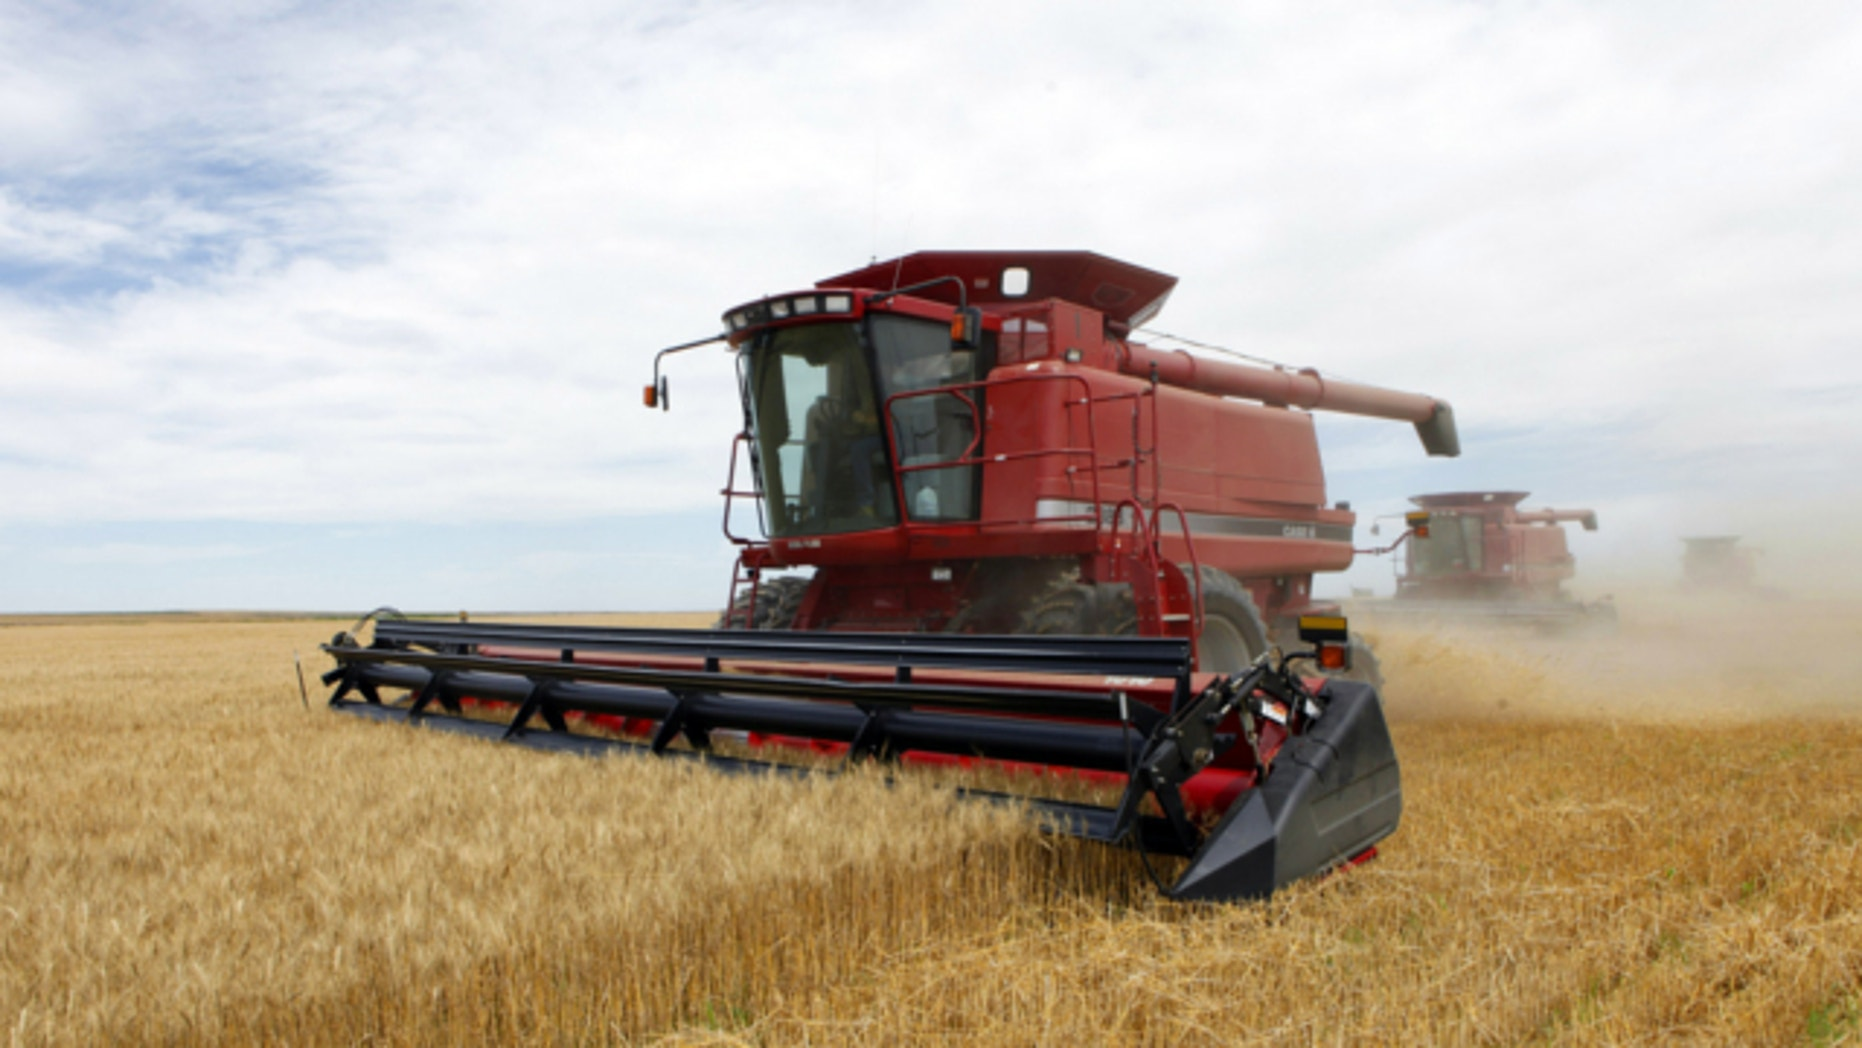 July 9, 2009: Three combines harvest the winter wheat on the Cooksey farm near Roggen, Colo.